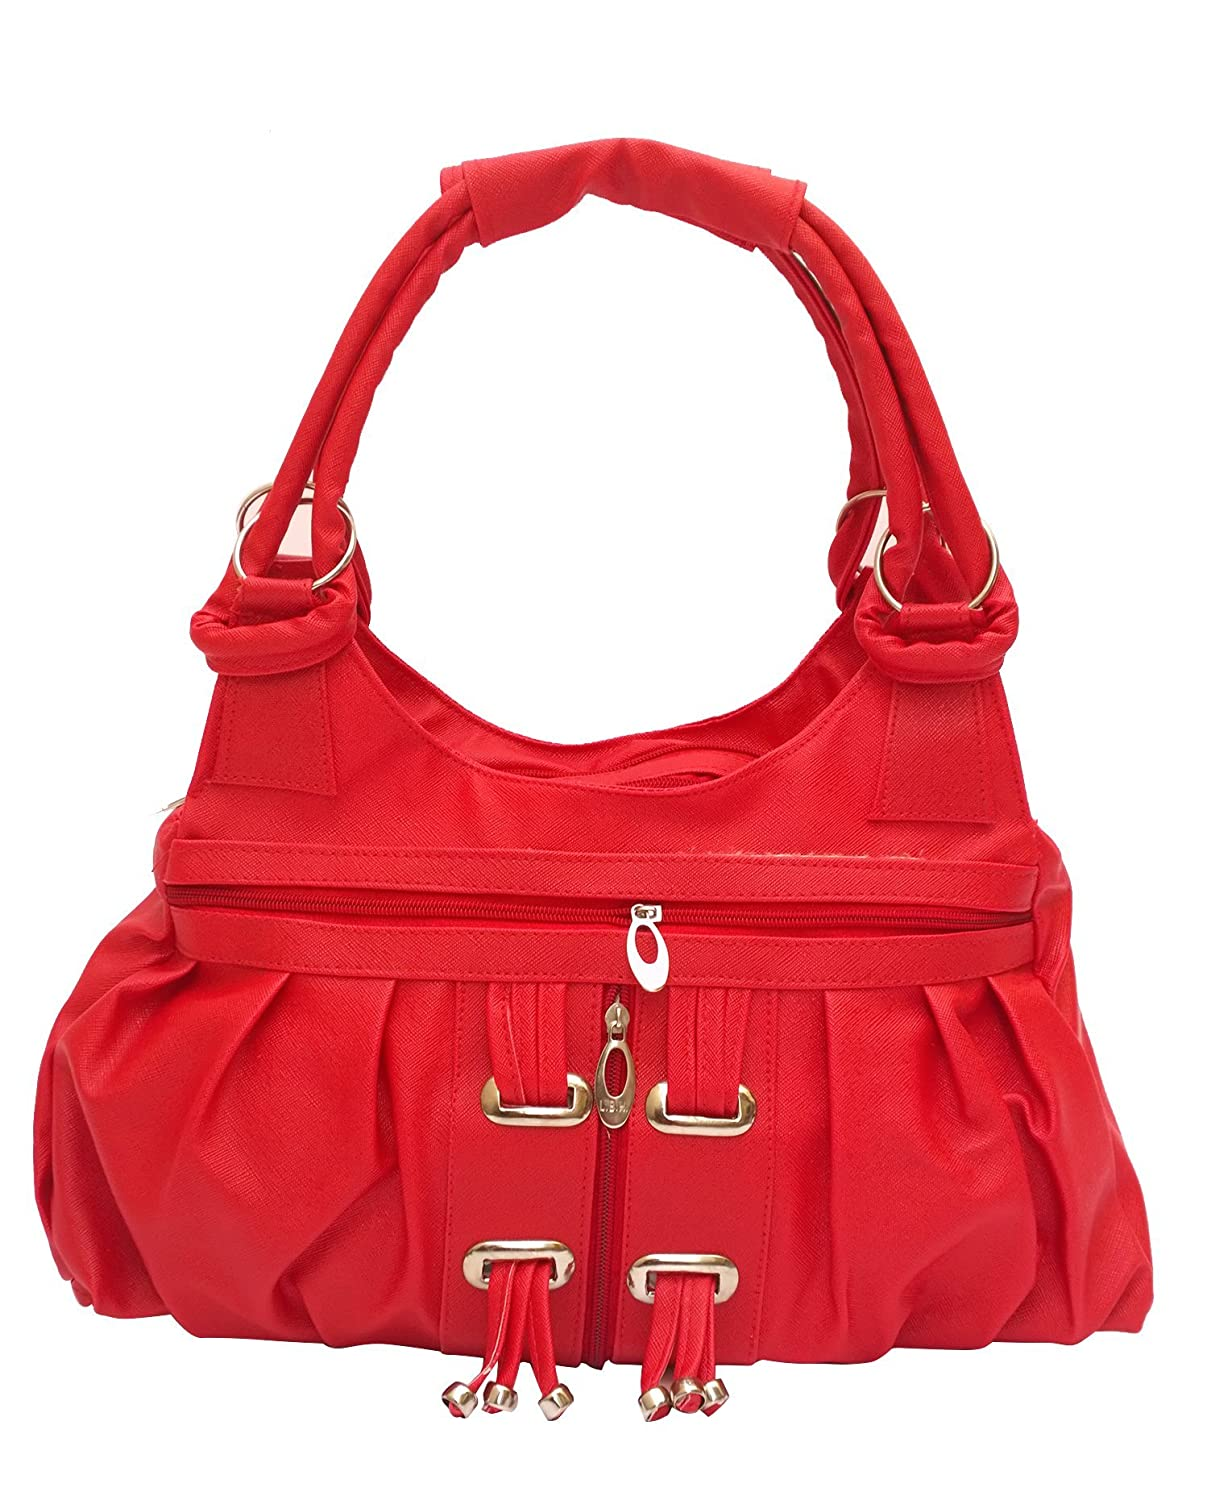 Ladies Bags - Fashion Handbags